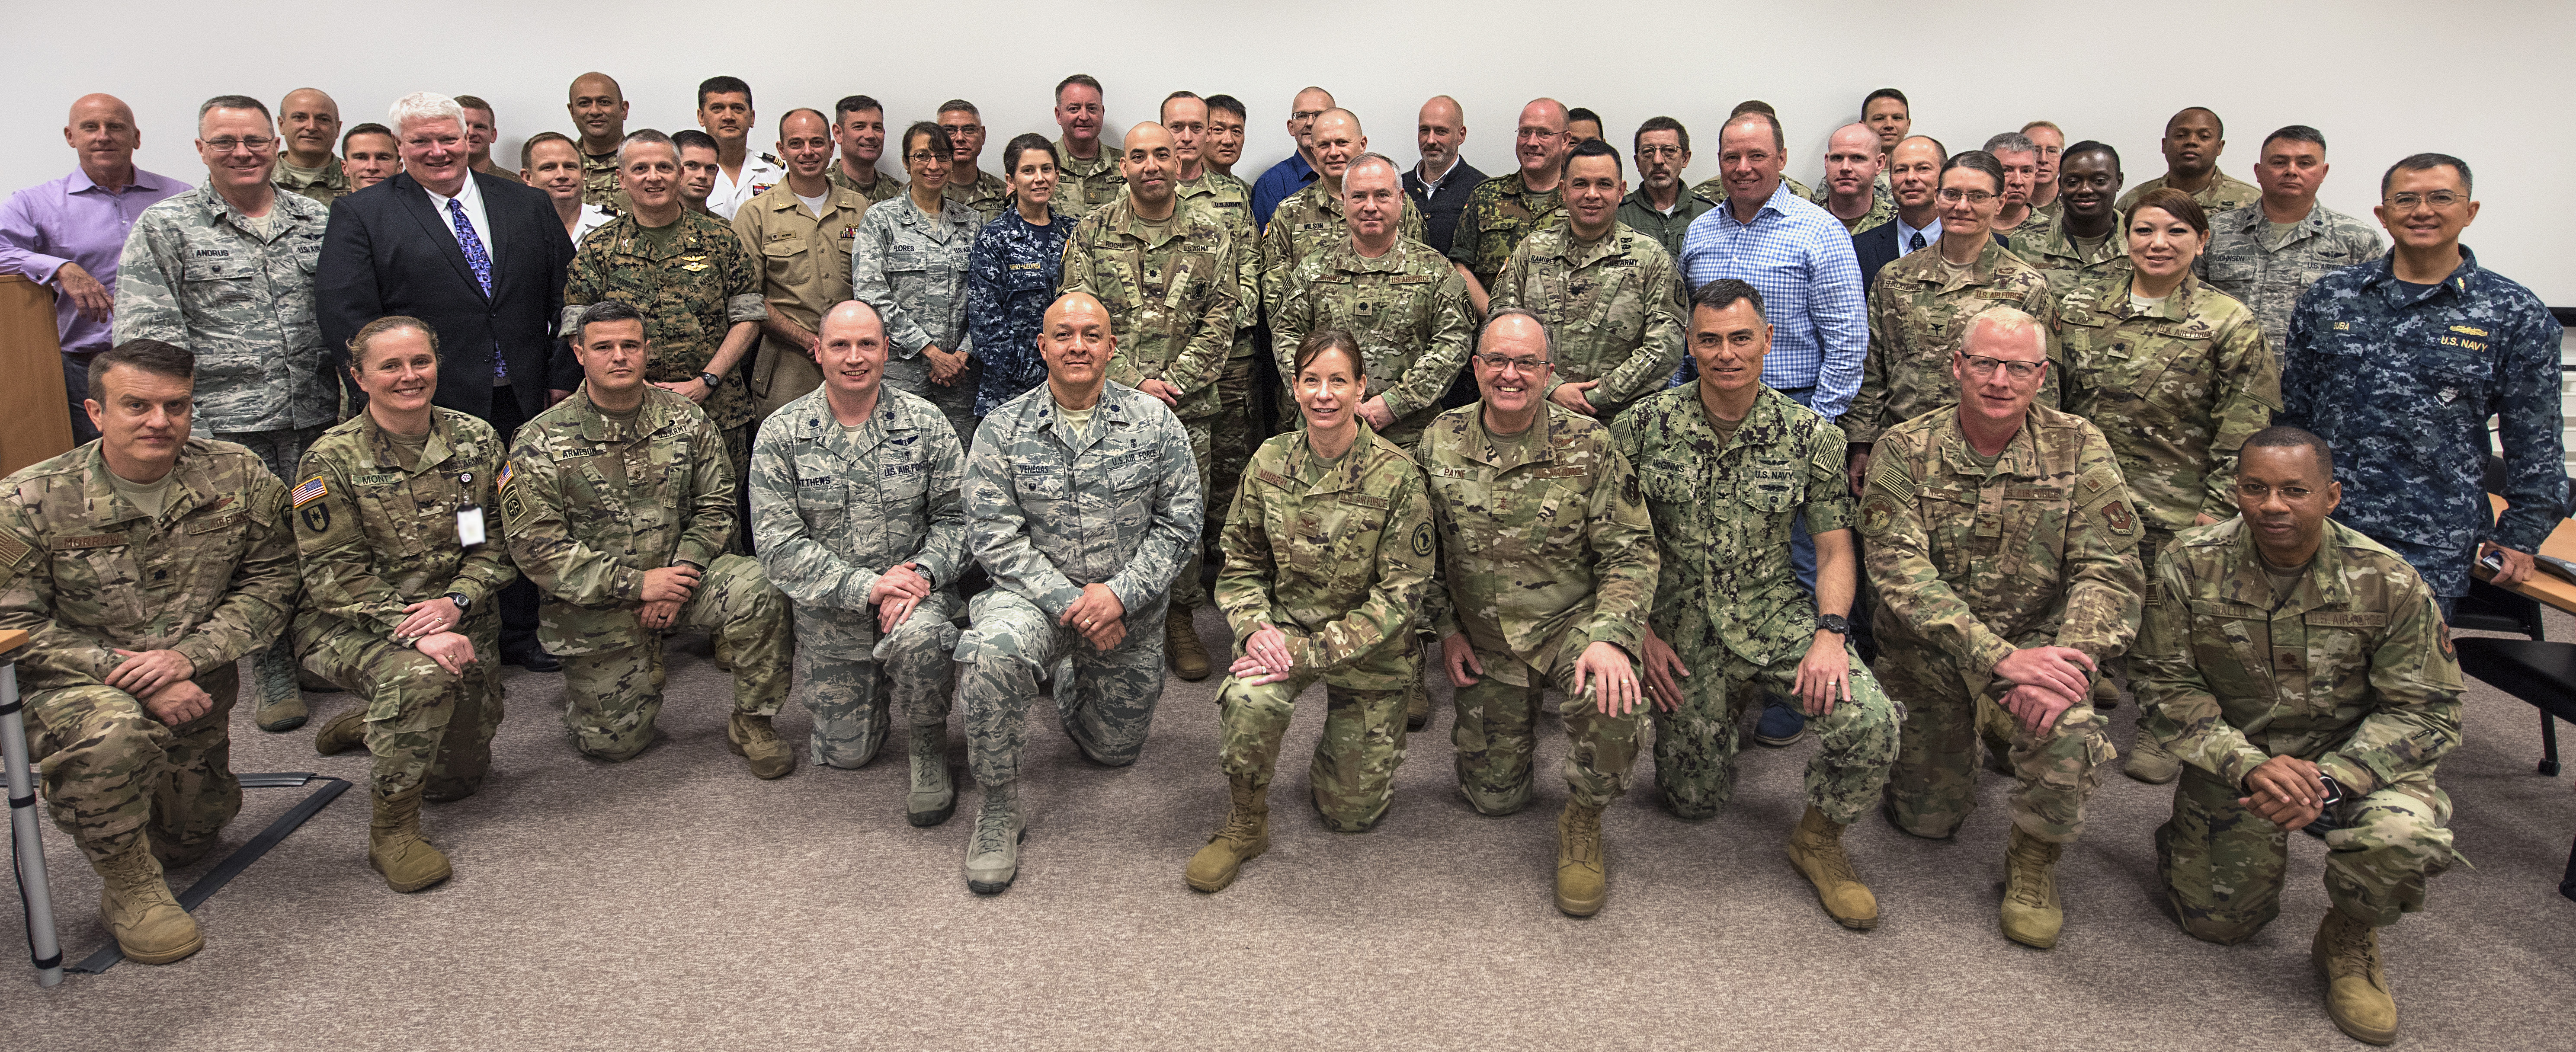 Attendees of the 2019 U.S. AFRICOM Command Surgeon Synchronization Conference pose for a photo, May 28, 2019 in Stuttgart, Germany. The conference brought together medical professionals from across the command, and interagency and foreign partners, to enable collaboration and to discuss areas of concern within the medical enterprise in Africa. (U.S. Navy photo by Mass Communication Specialist 1st Class Christopher Hurd/Released)